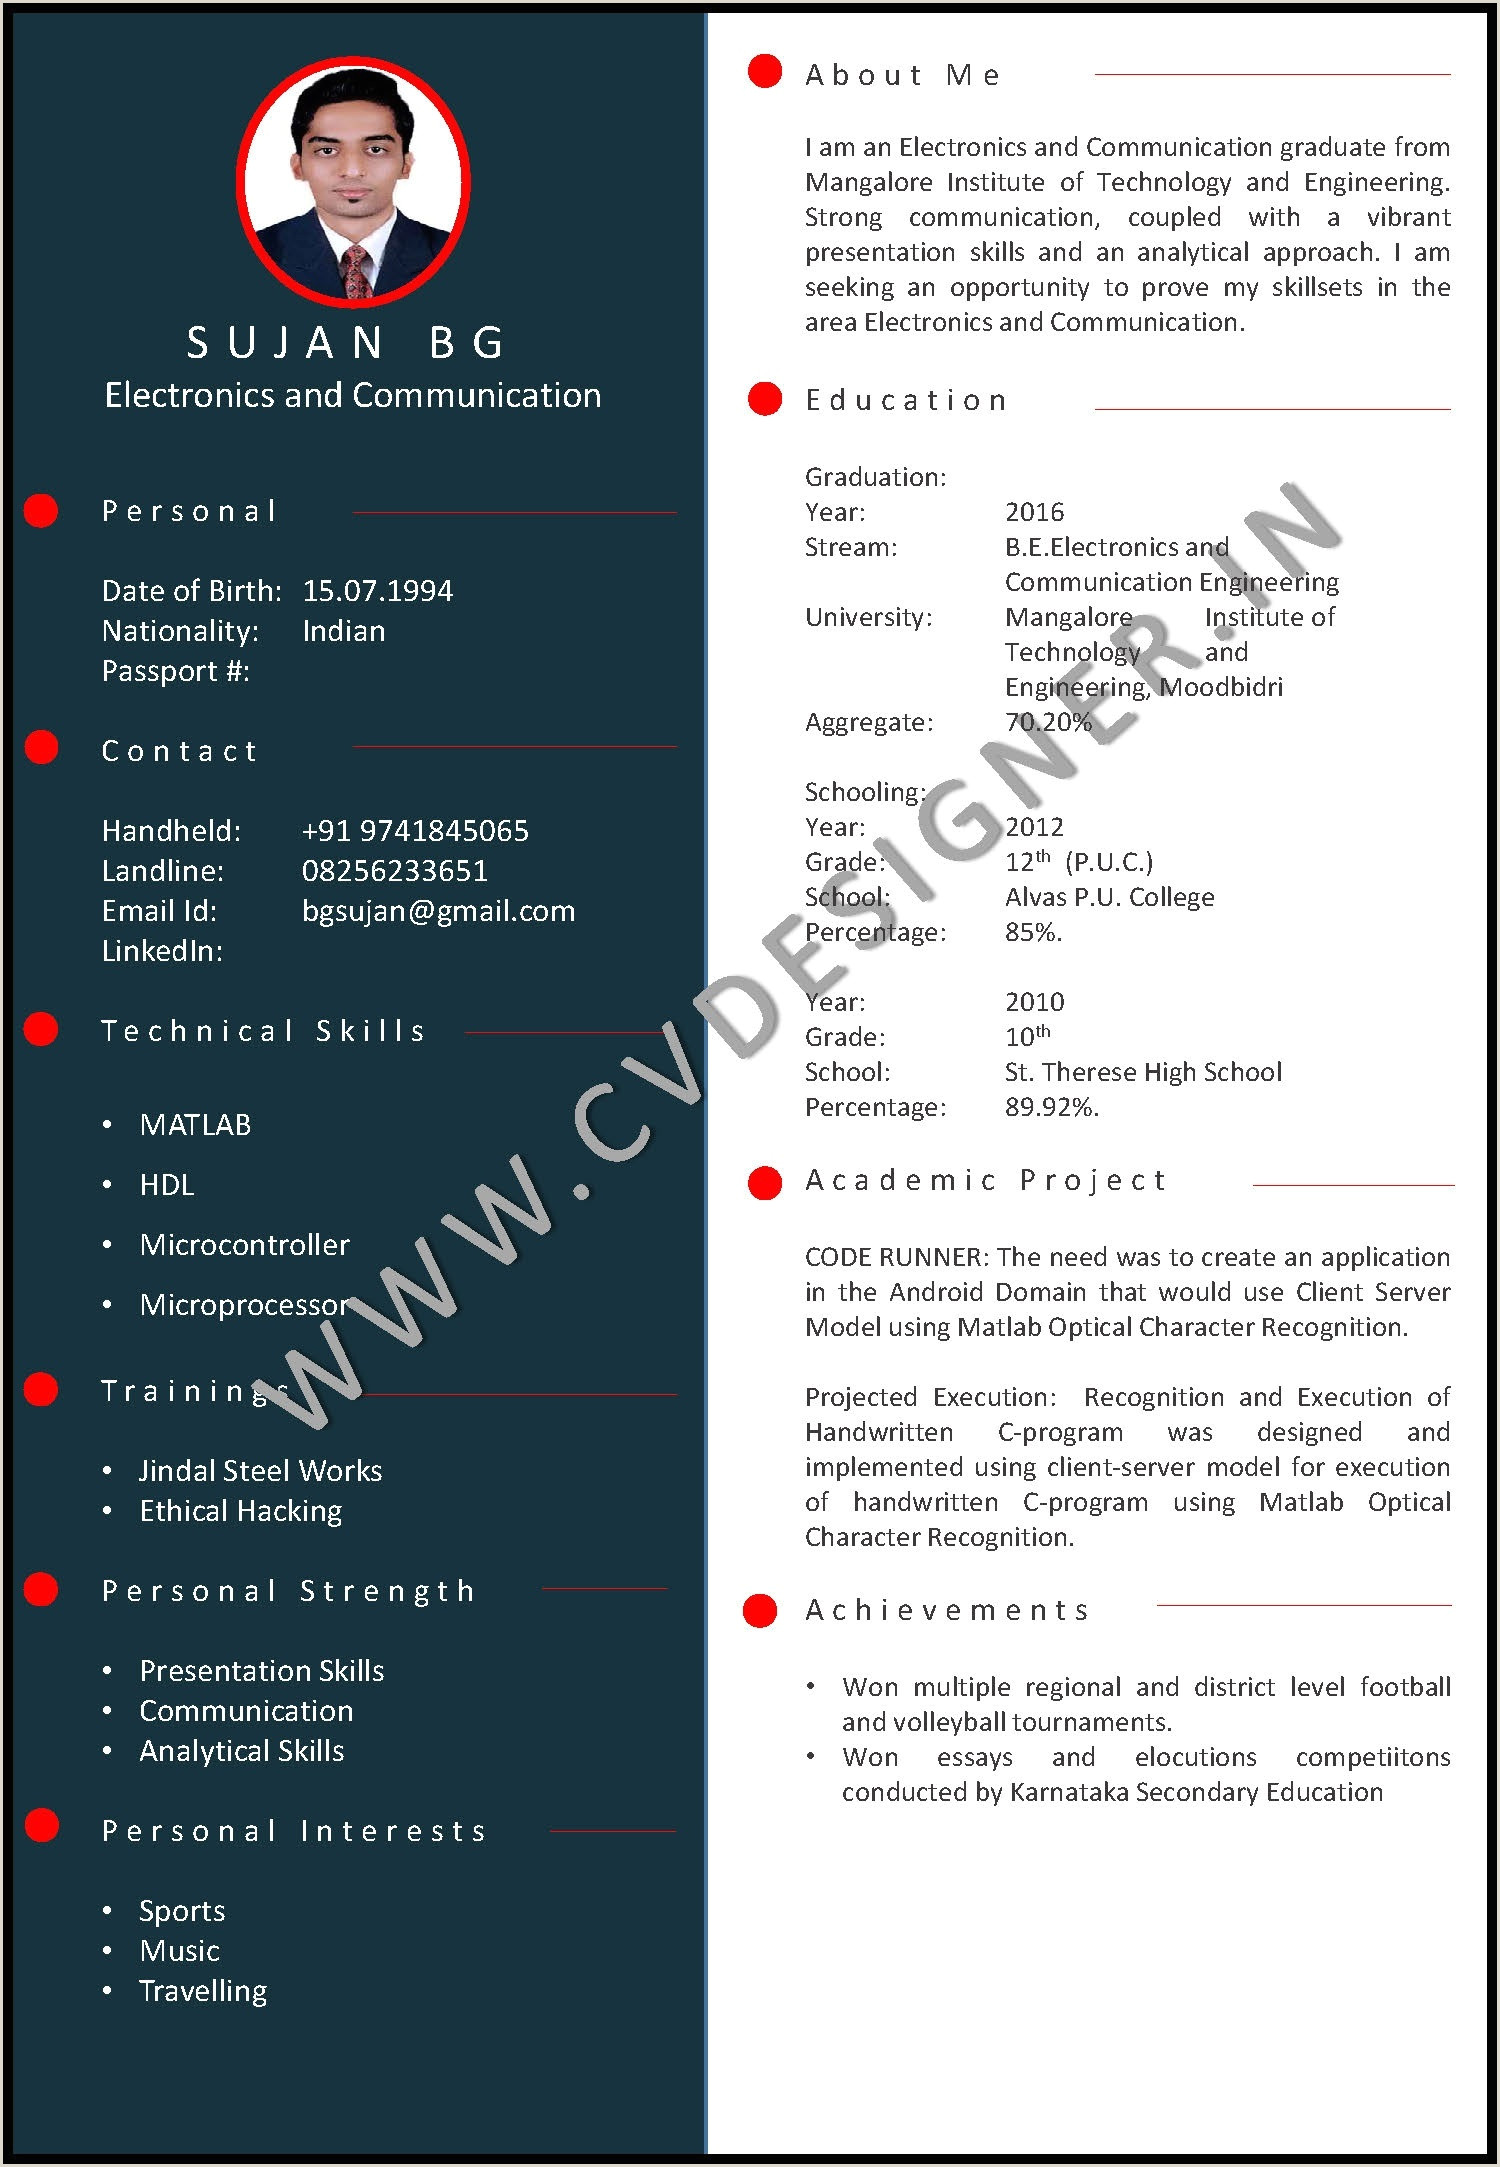 Fresher Resume format Pdf India How to Make A Good Resume as A Fresher Quora